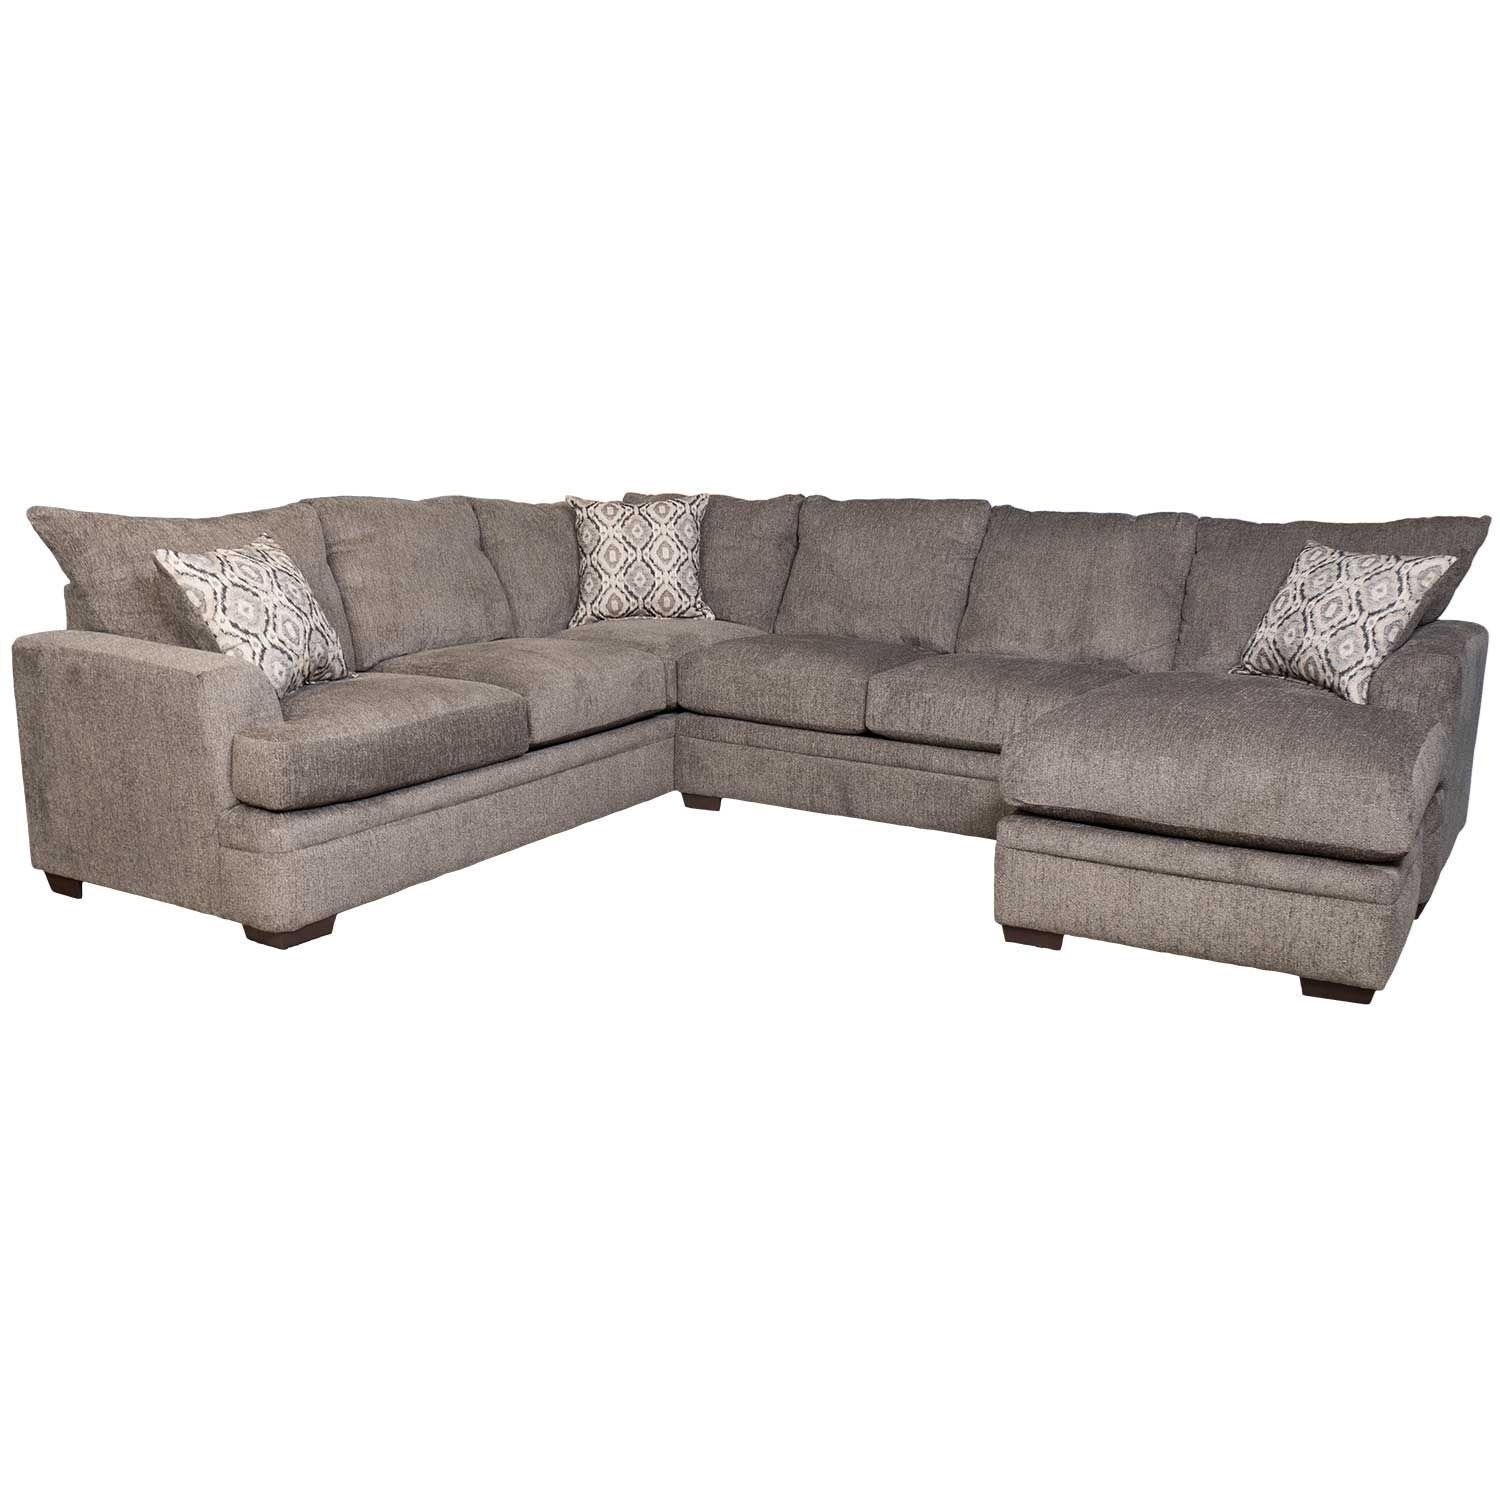 2Pc Pewter Raf Sectional W/chaise C2-68Rc-2Pc | Afw | Afw in Evan 2 Piece Sectionals With Raf Chaise